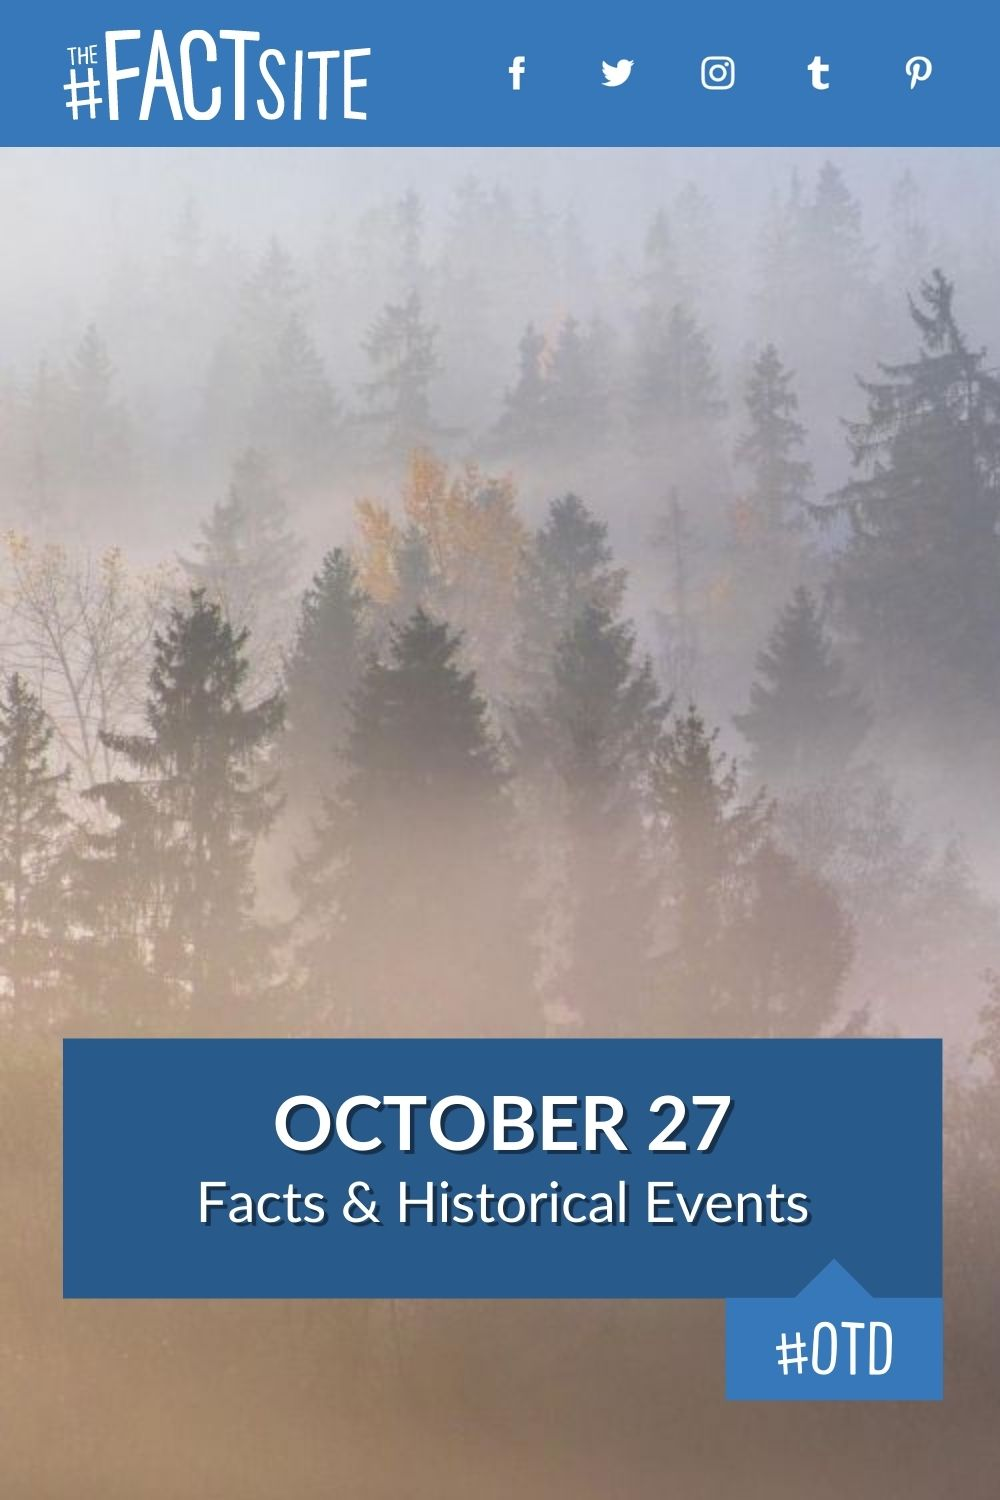 Facts & Historic Events That Happened on October 27